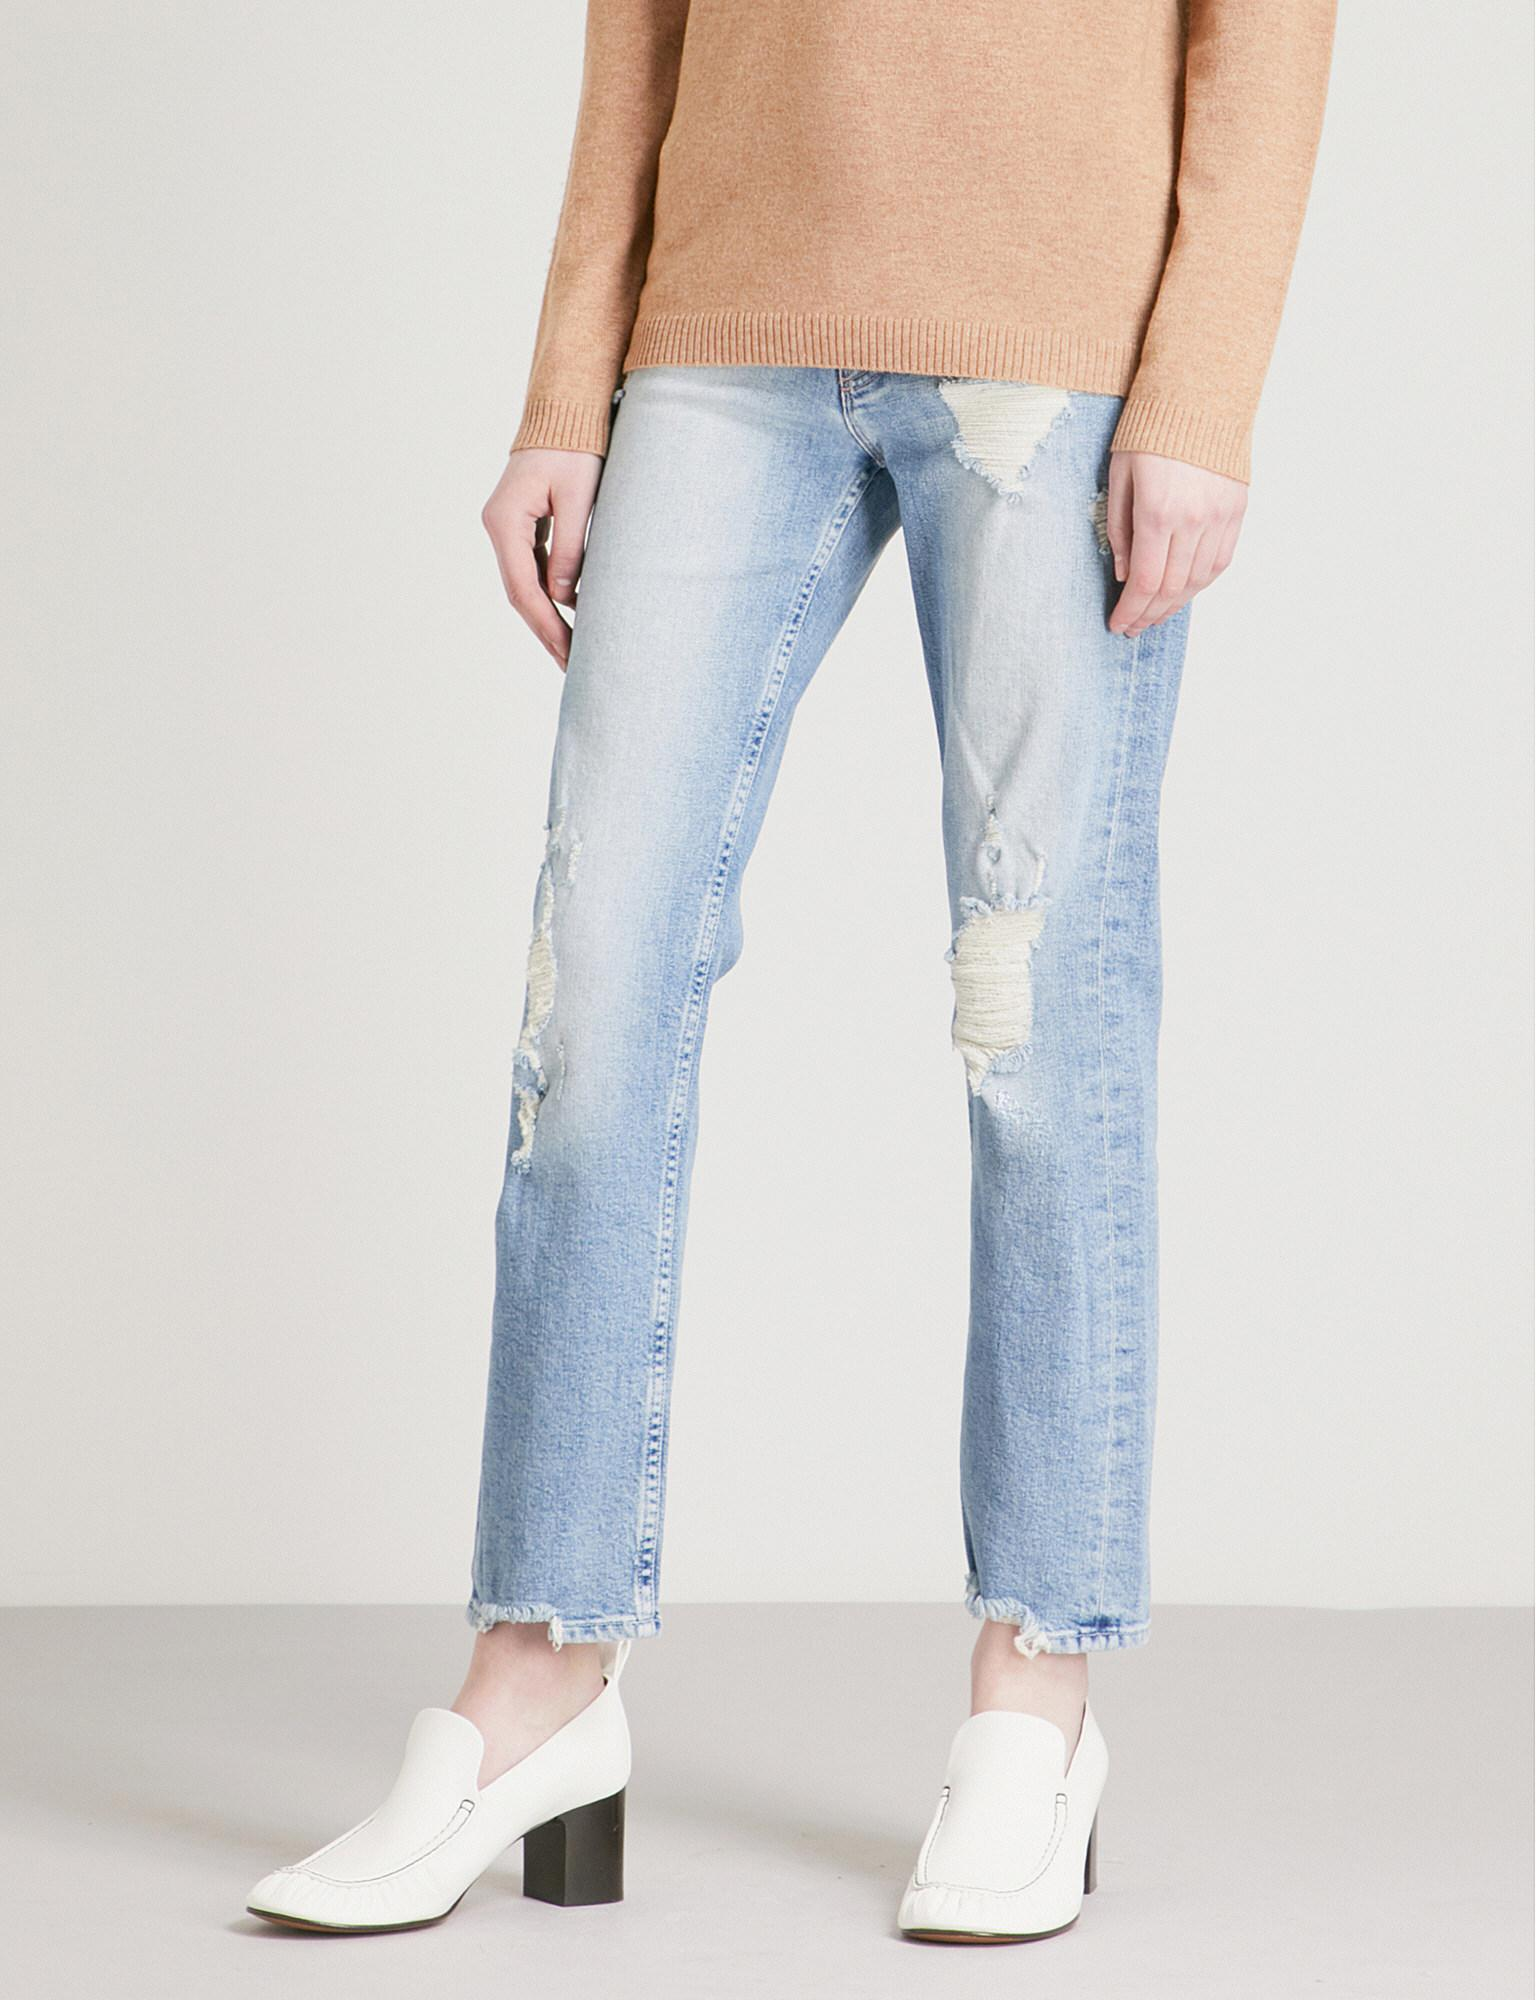 a54600ee98e3f Lyst - Mother The Tomcat Ankle Distressed Straight Mid-rise Jeans in ...